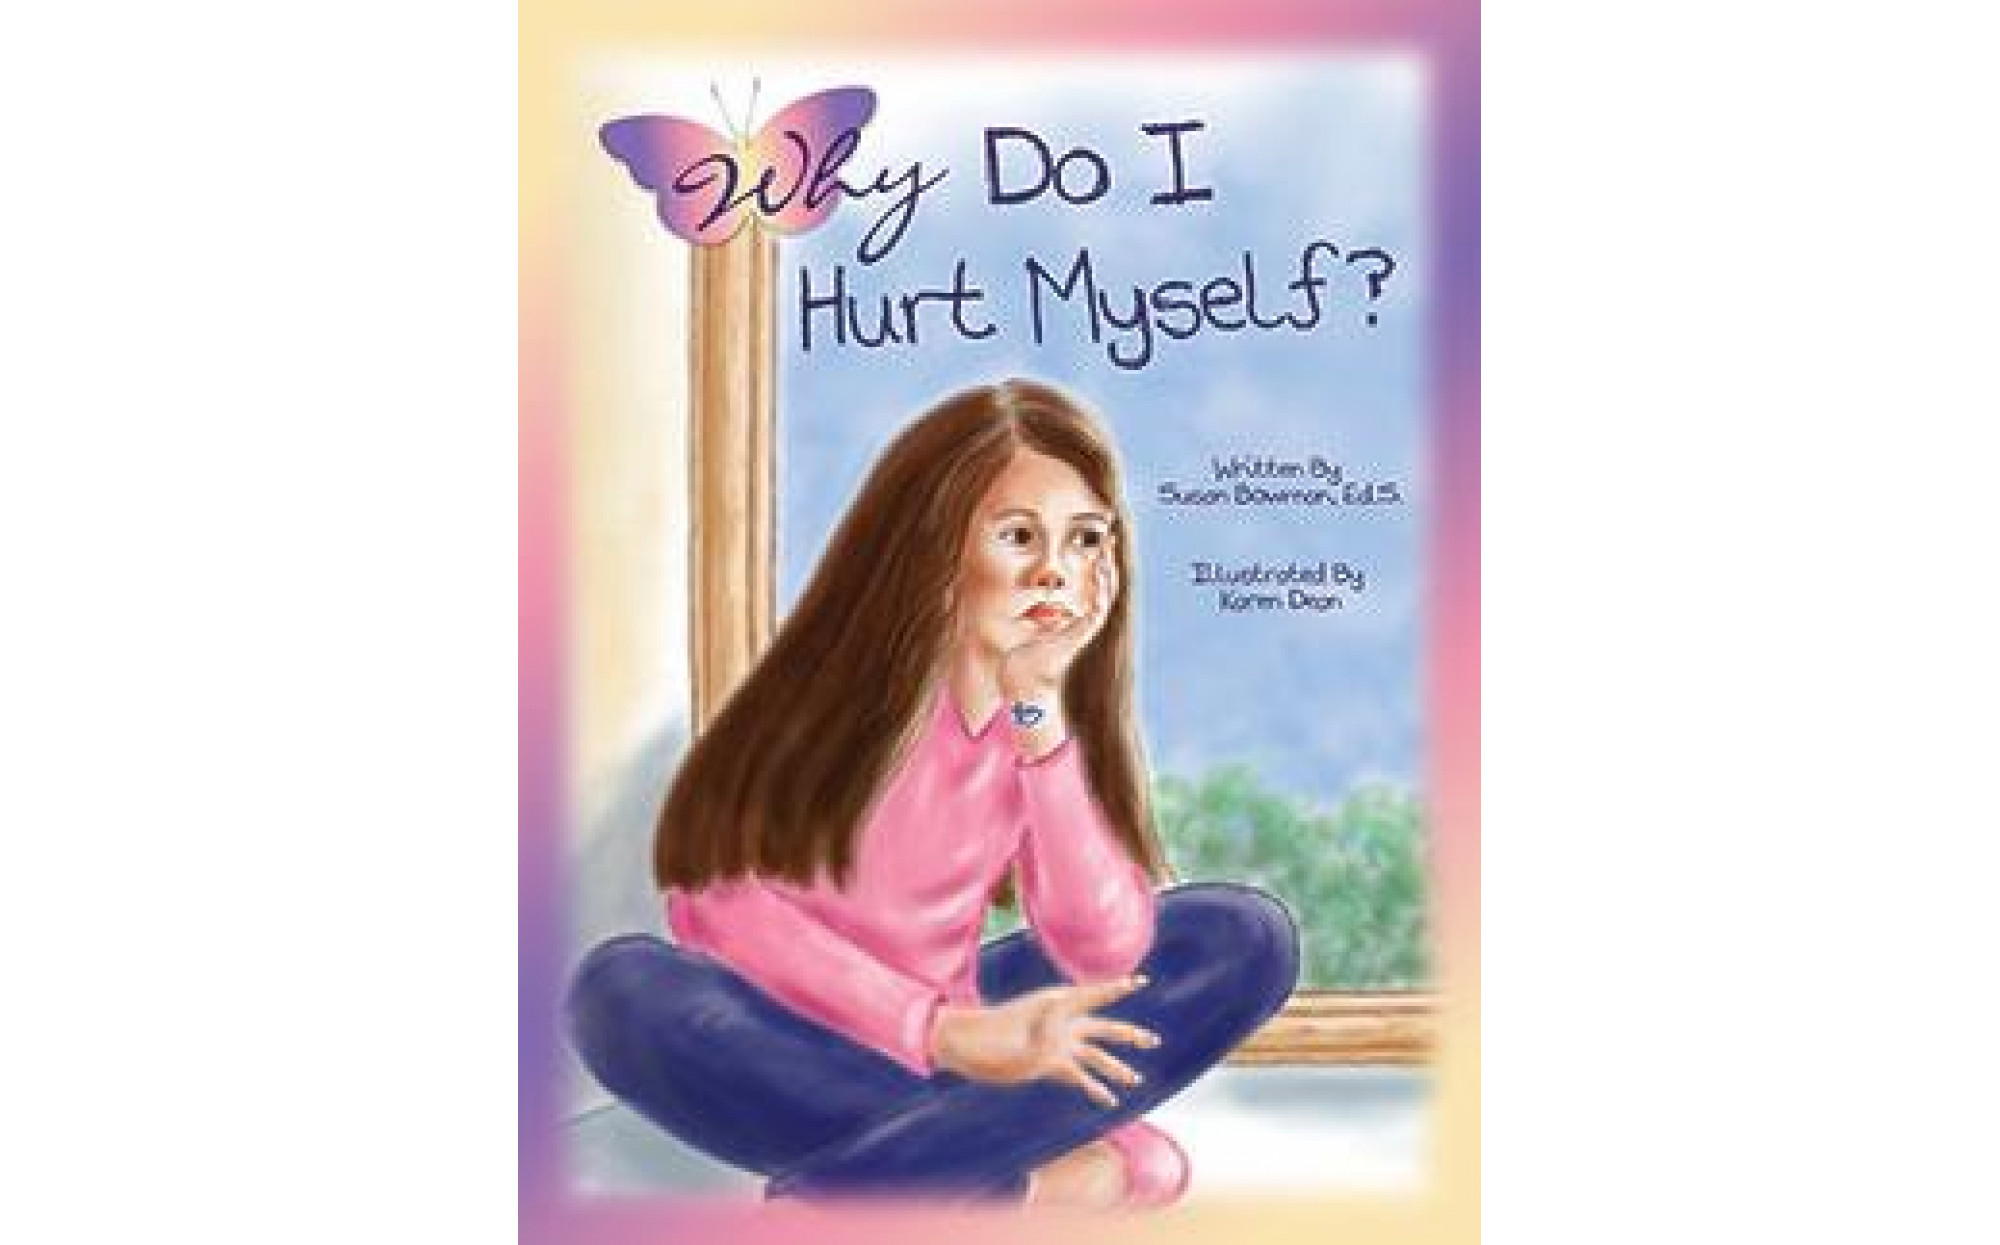 Why Do I Hurt Myself A Story About Children Who Self Harm